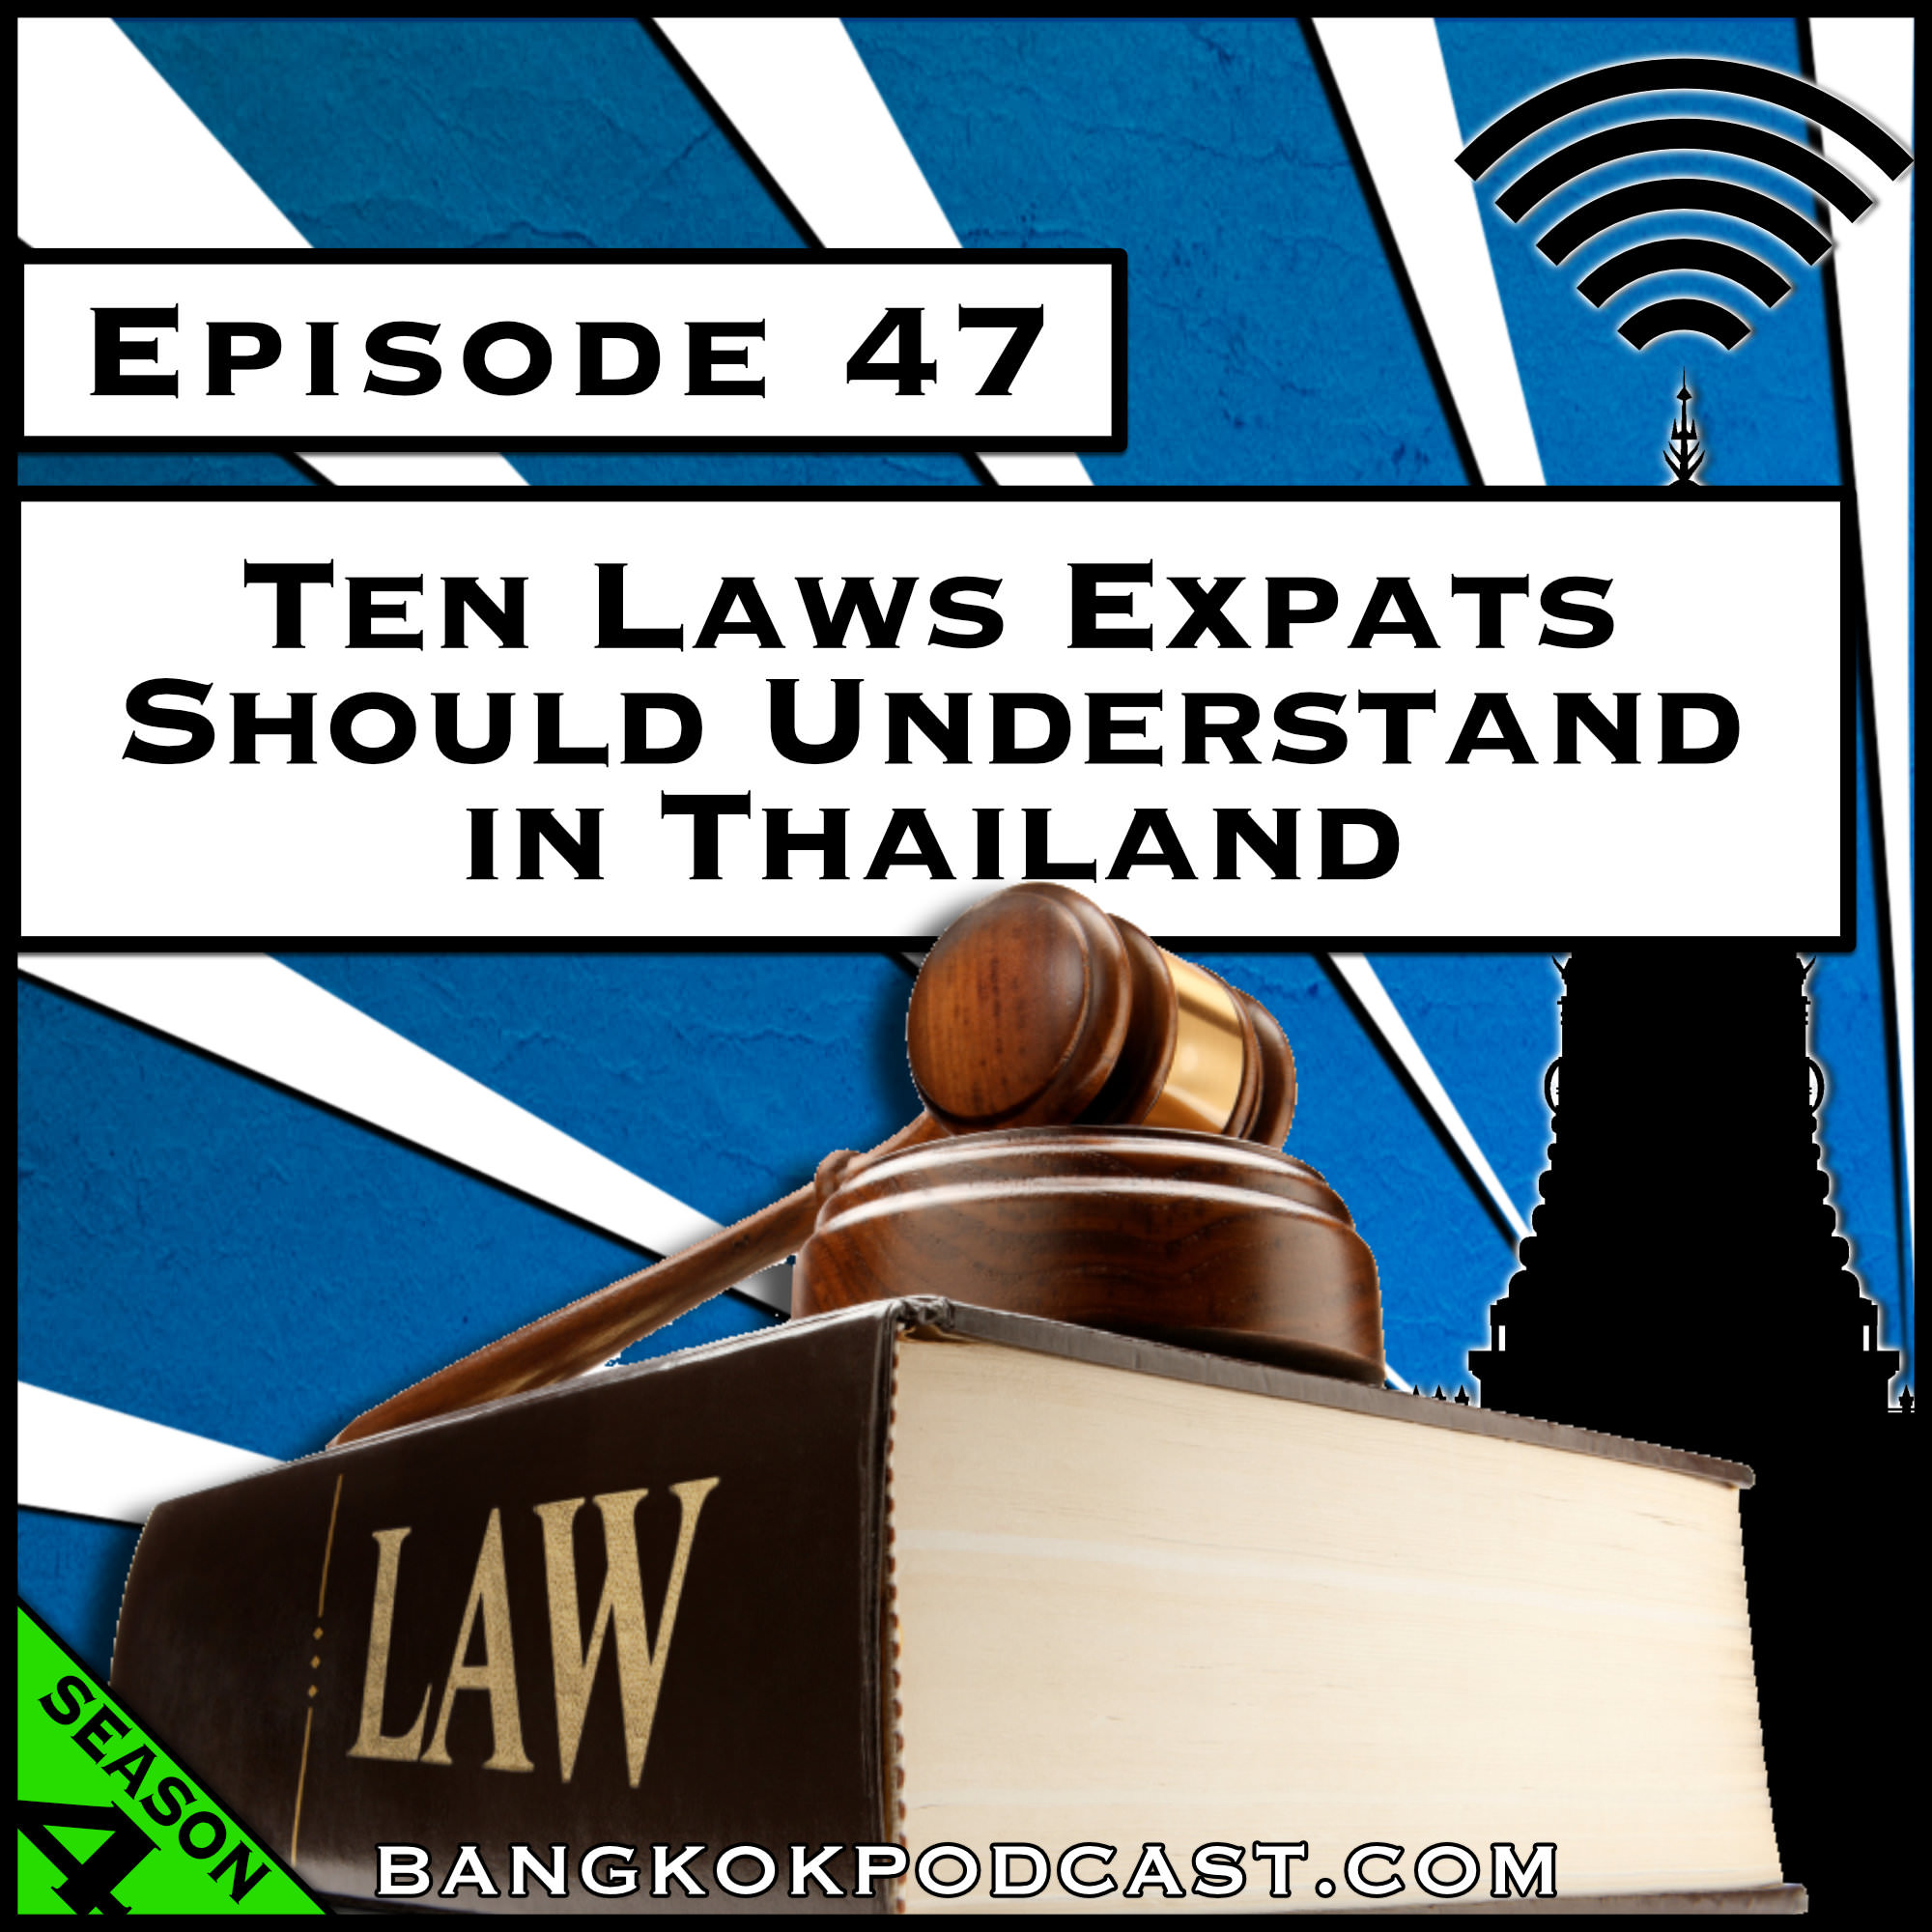 Ten Laws Expats Should Understand in Thailand [Season 4, Episode 47]